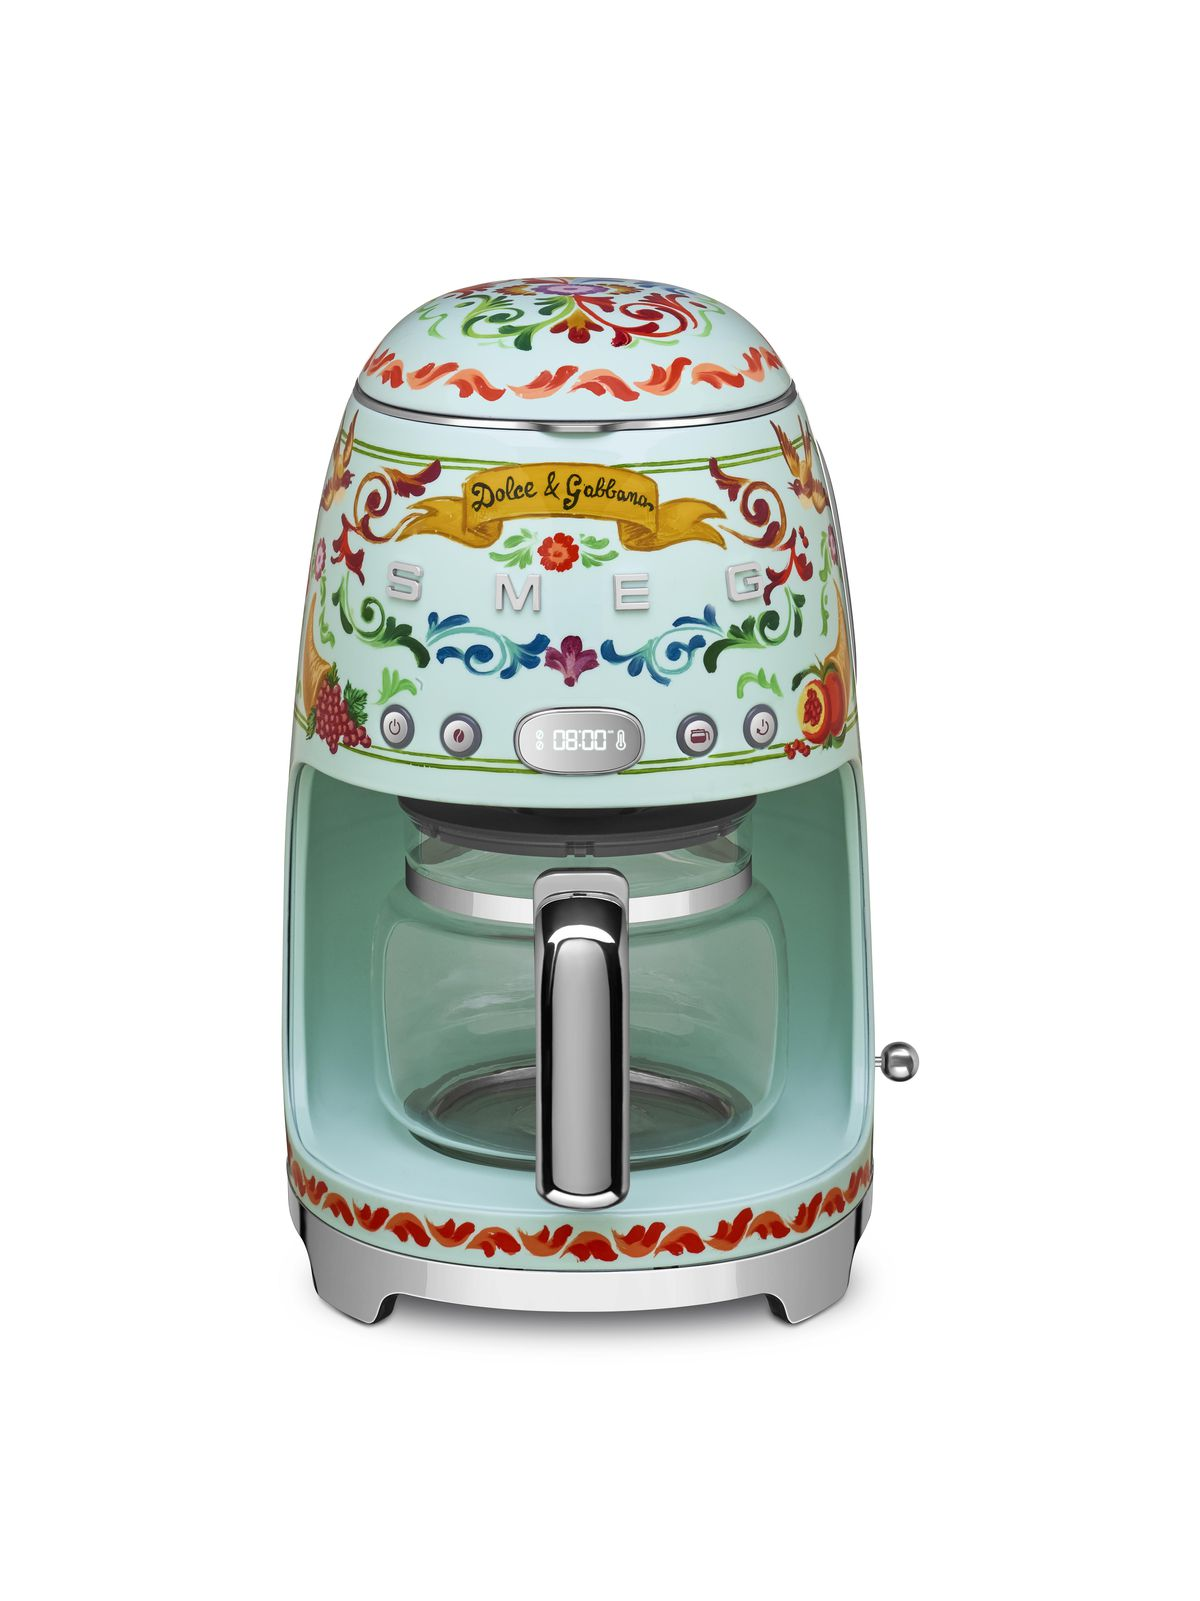 Curbed For Appliances Dolce Again Expands amp; Kitchen Gabbana Smeg p7BwP4